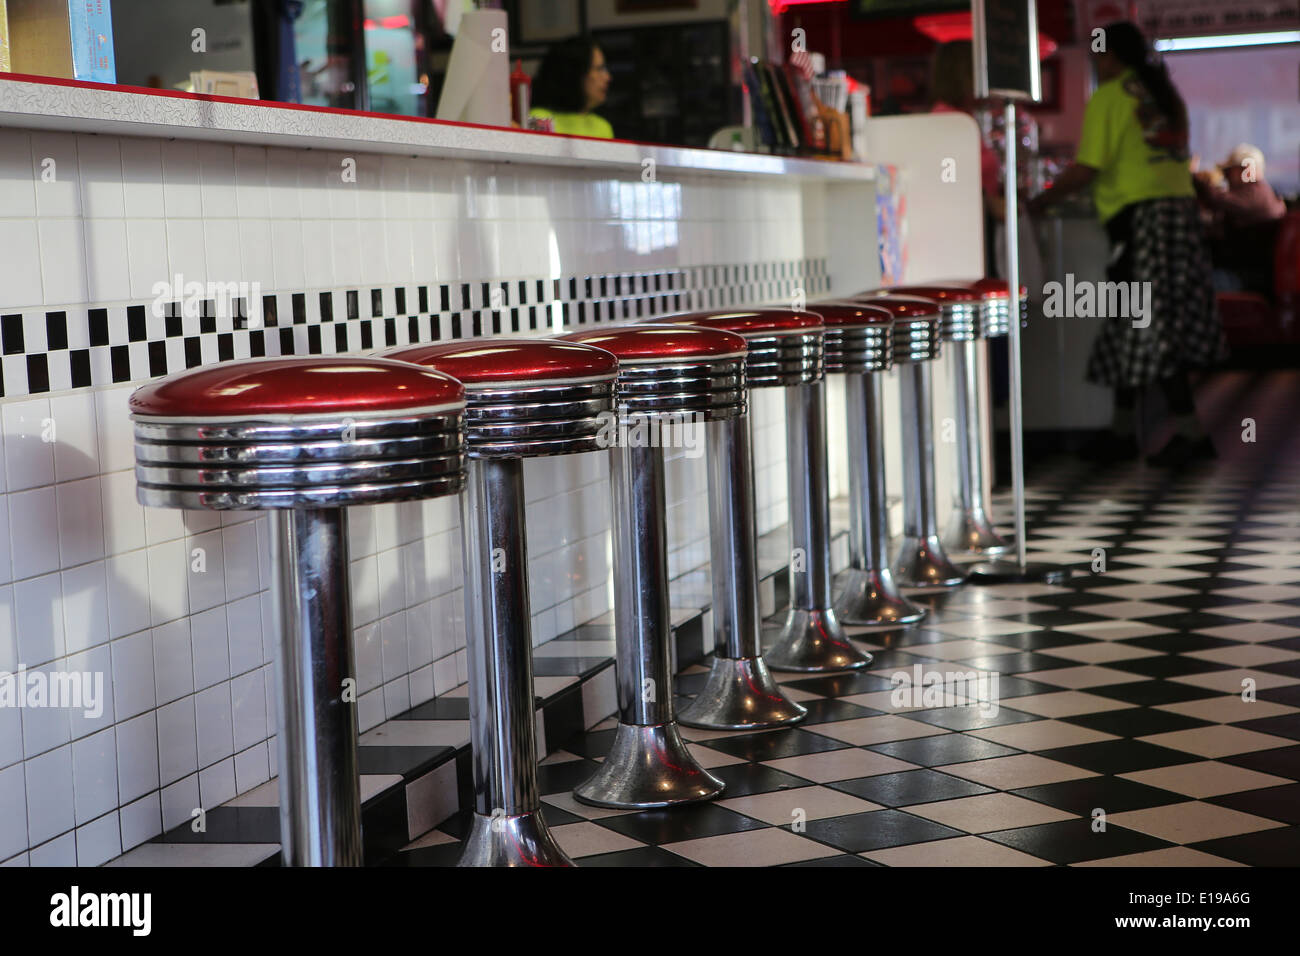 The interior of The Diner, a classic american diner restaurant, is pictured in Sevierville, Tennessee - Stock Image